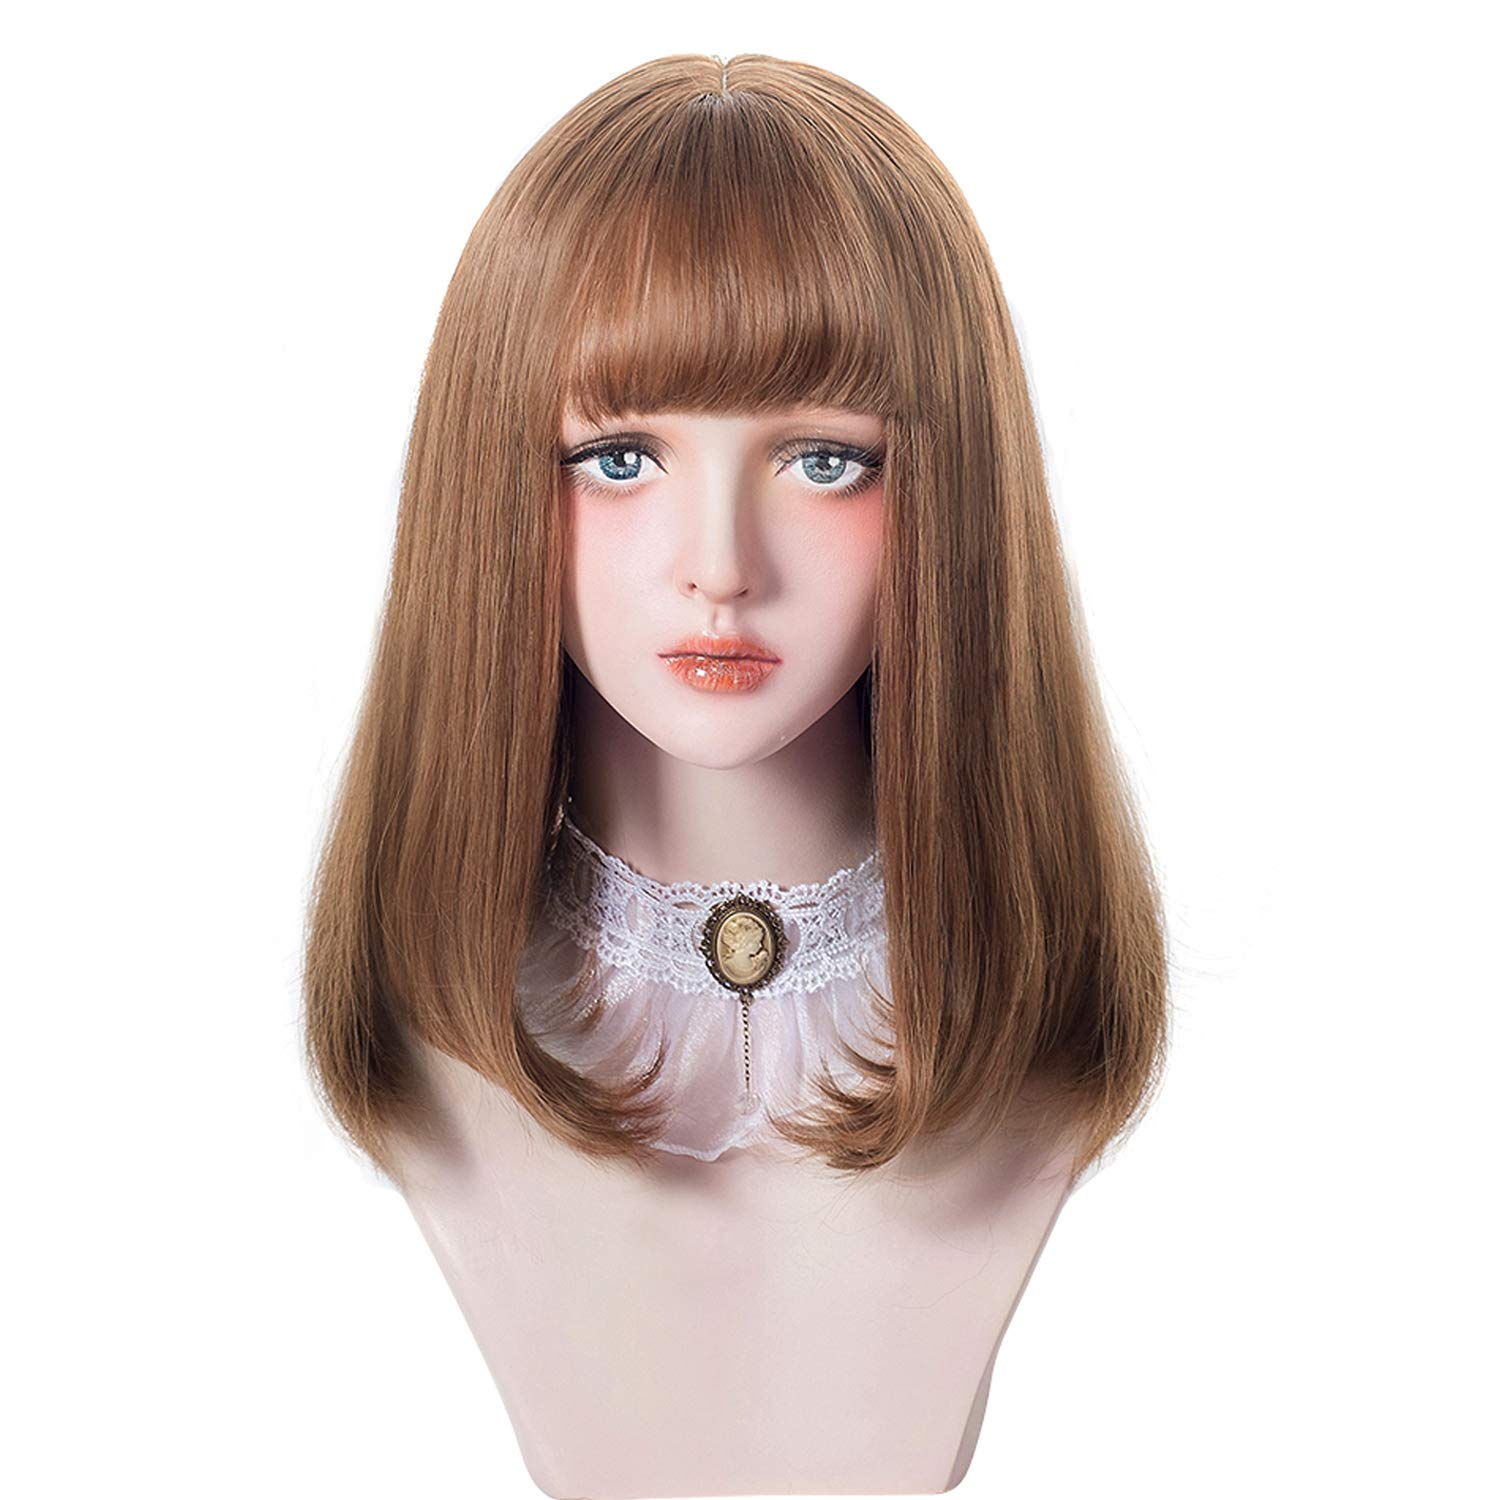 Short Bob Brown Wig Bangs - Bob Synthetic Wig For Women Cosplay Costume, Natural Hair Color Lolita Wig For Party and Daily with Wig Cap